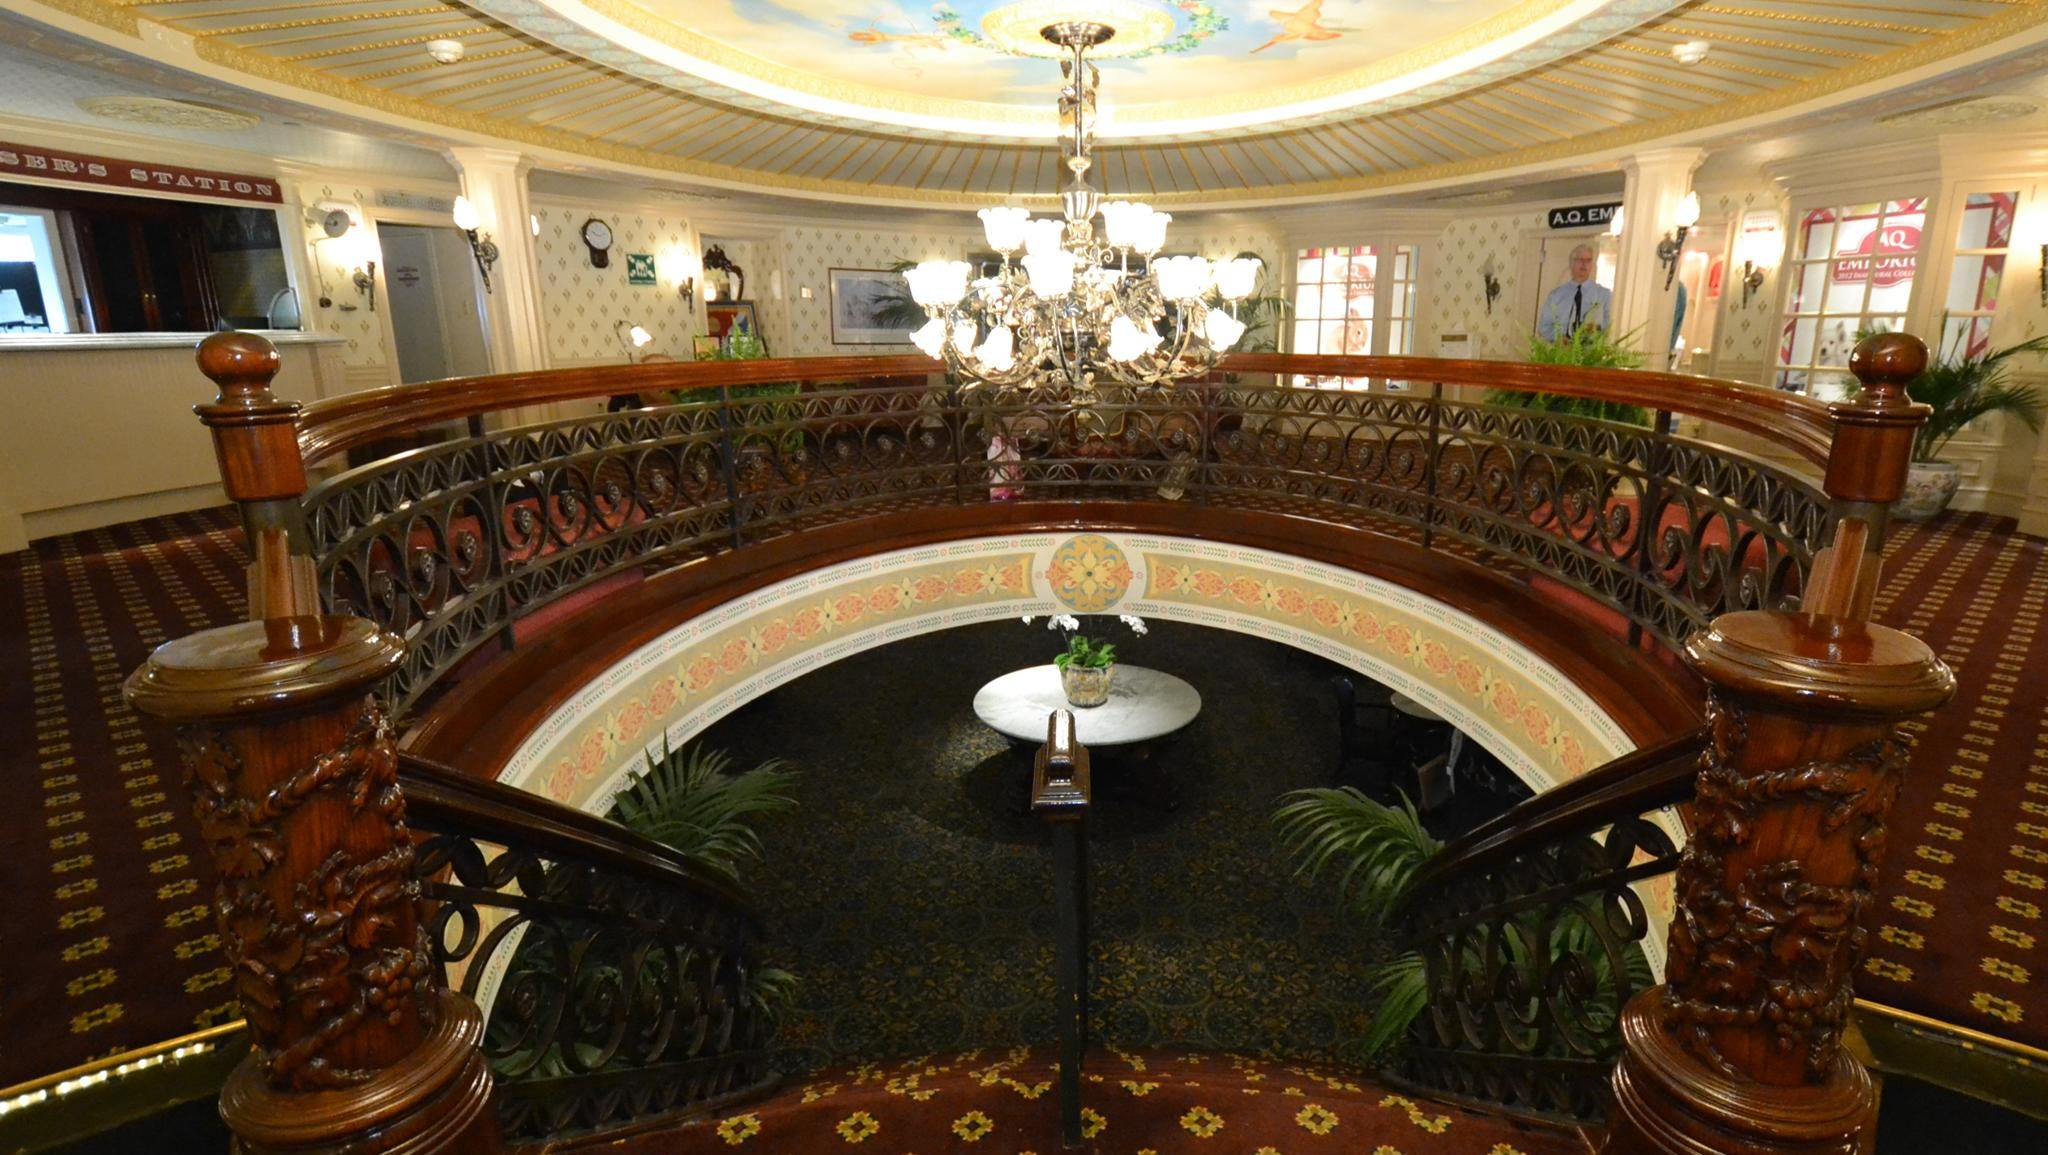 The view from the Purser's Lobby looking down the grand staircase to the Lounge.